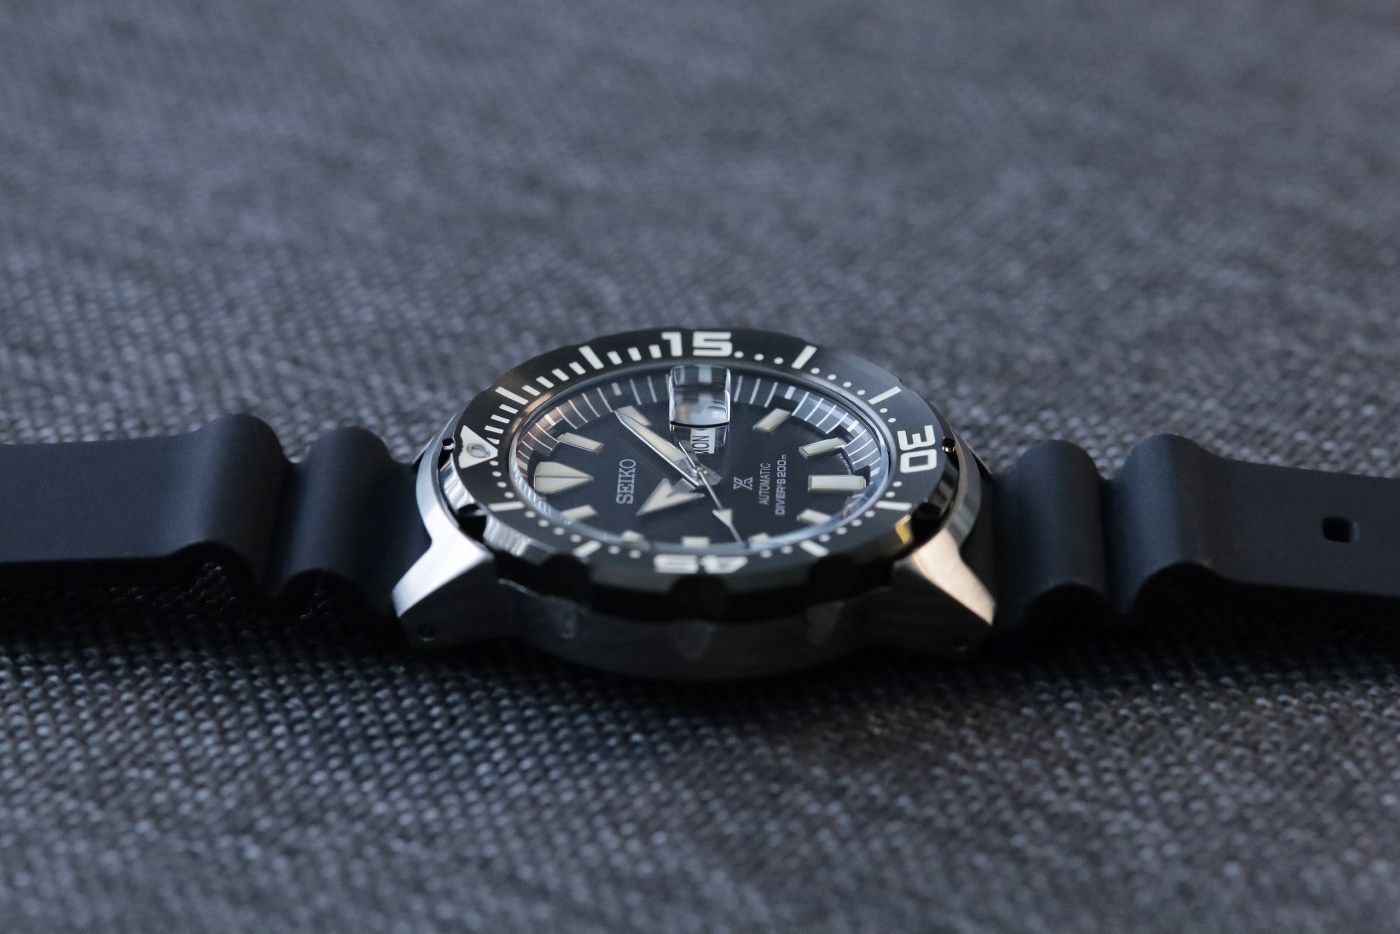 Seiko Prospex Ref SRPD27 Monster Automatic Diver side view